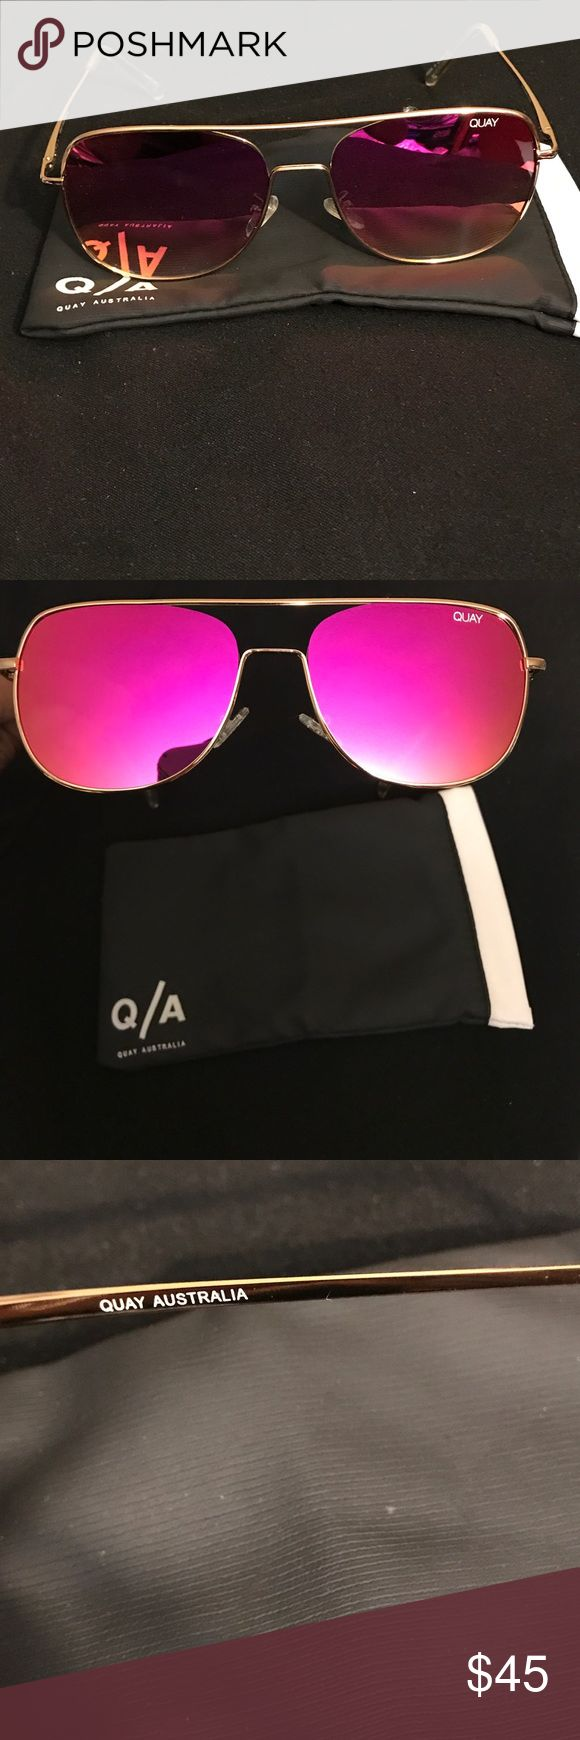 Quay Running Riot sunglasses! Really cool!❤️ I bought these online, then only wore them once or twice. They are lightweight and cool but I like heavier sunglasses. Hot pink/fuchsia mirror lens! Very light scratch on right lens but barely noticeable. My loss is your gain! 100% authentic, bought online through their store. I'm including the soft case and will pack them securely in a box. 🚫No trades, PP, Merc, lowballing, etc. Thank you for viewing my closet!❤️ Quay Australia Accessories…